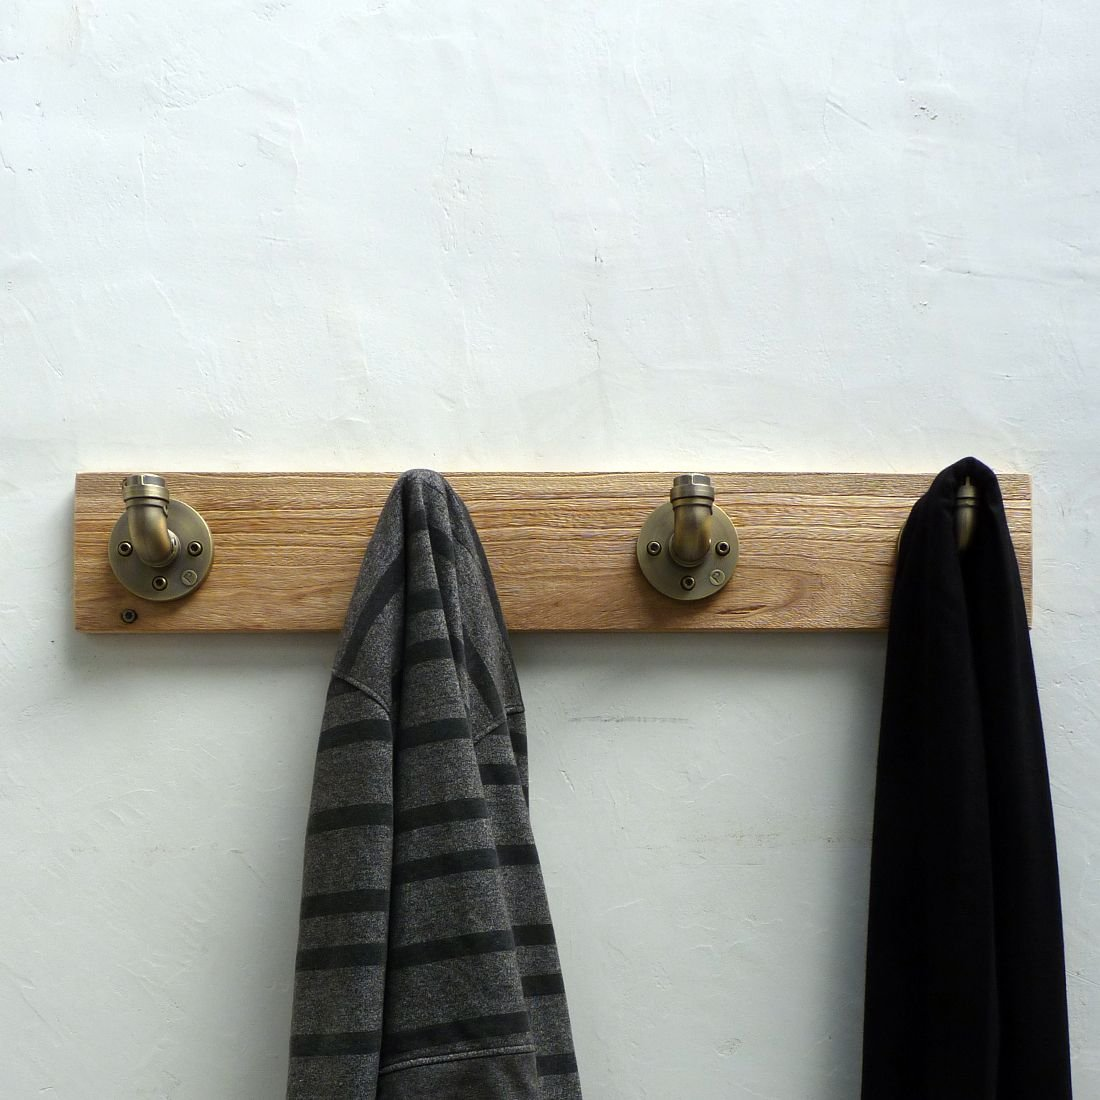 San Antonio Industrial Wall Mounted Entryway Hat Coat Clothes Clothing Towel Robe Rack 4 Aluminum Hooks with Sustainable Solid Wood / 6 inches H x 36 inches W x 4 inches D (Natural Stained Wood)